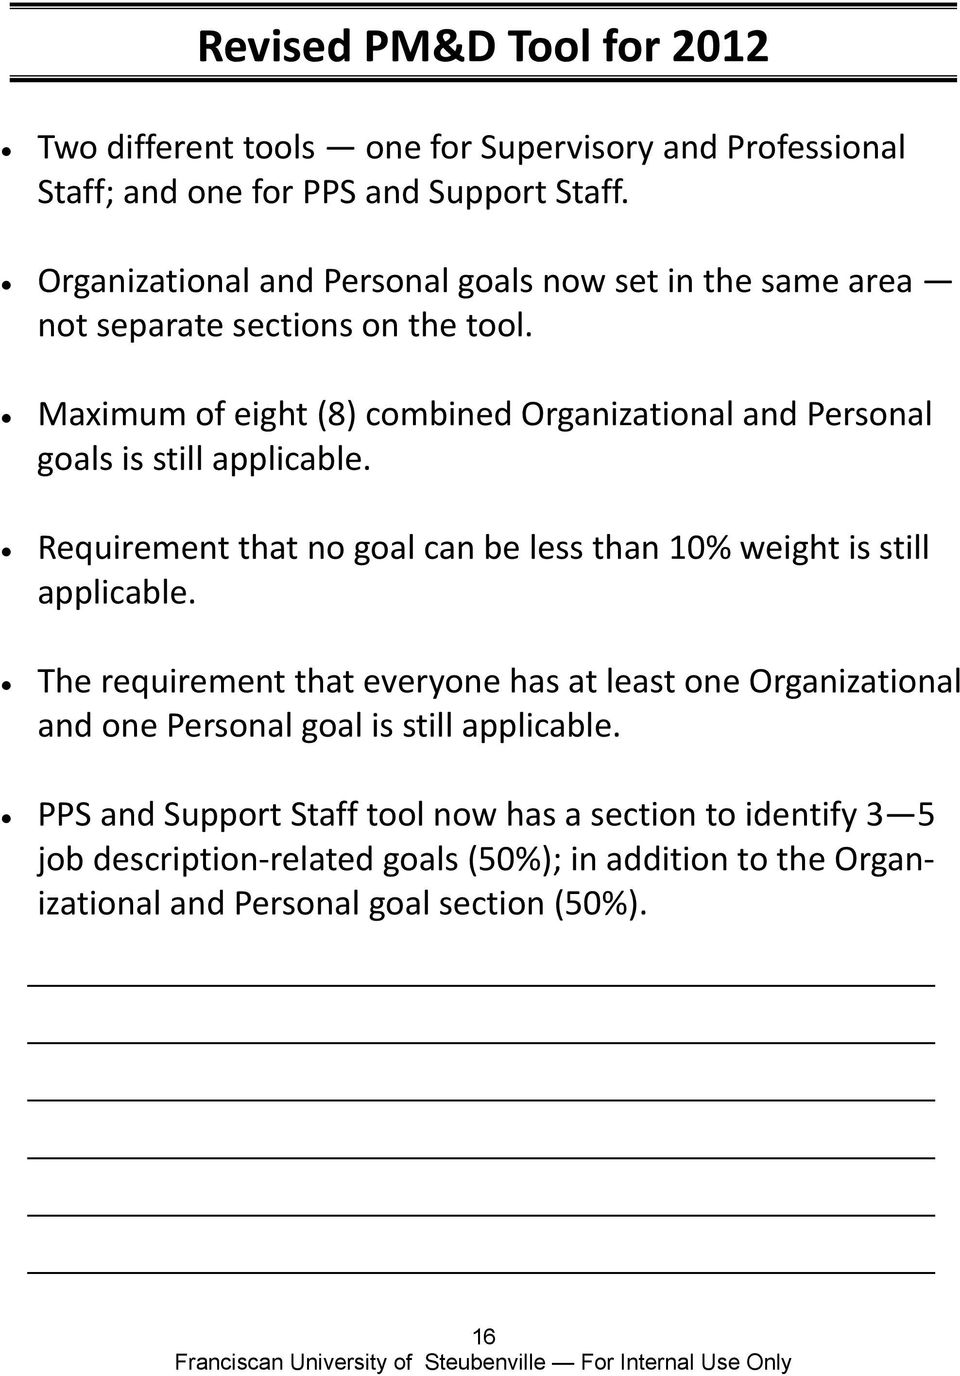 Maximum of eight (8) combined Organizational and Personal goals is still applicable. Requirement that no goal can be less than 10% weight is still applicable.